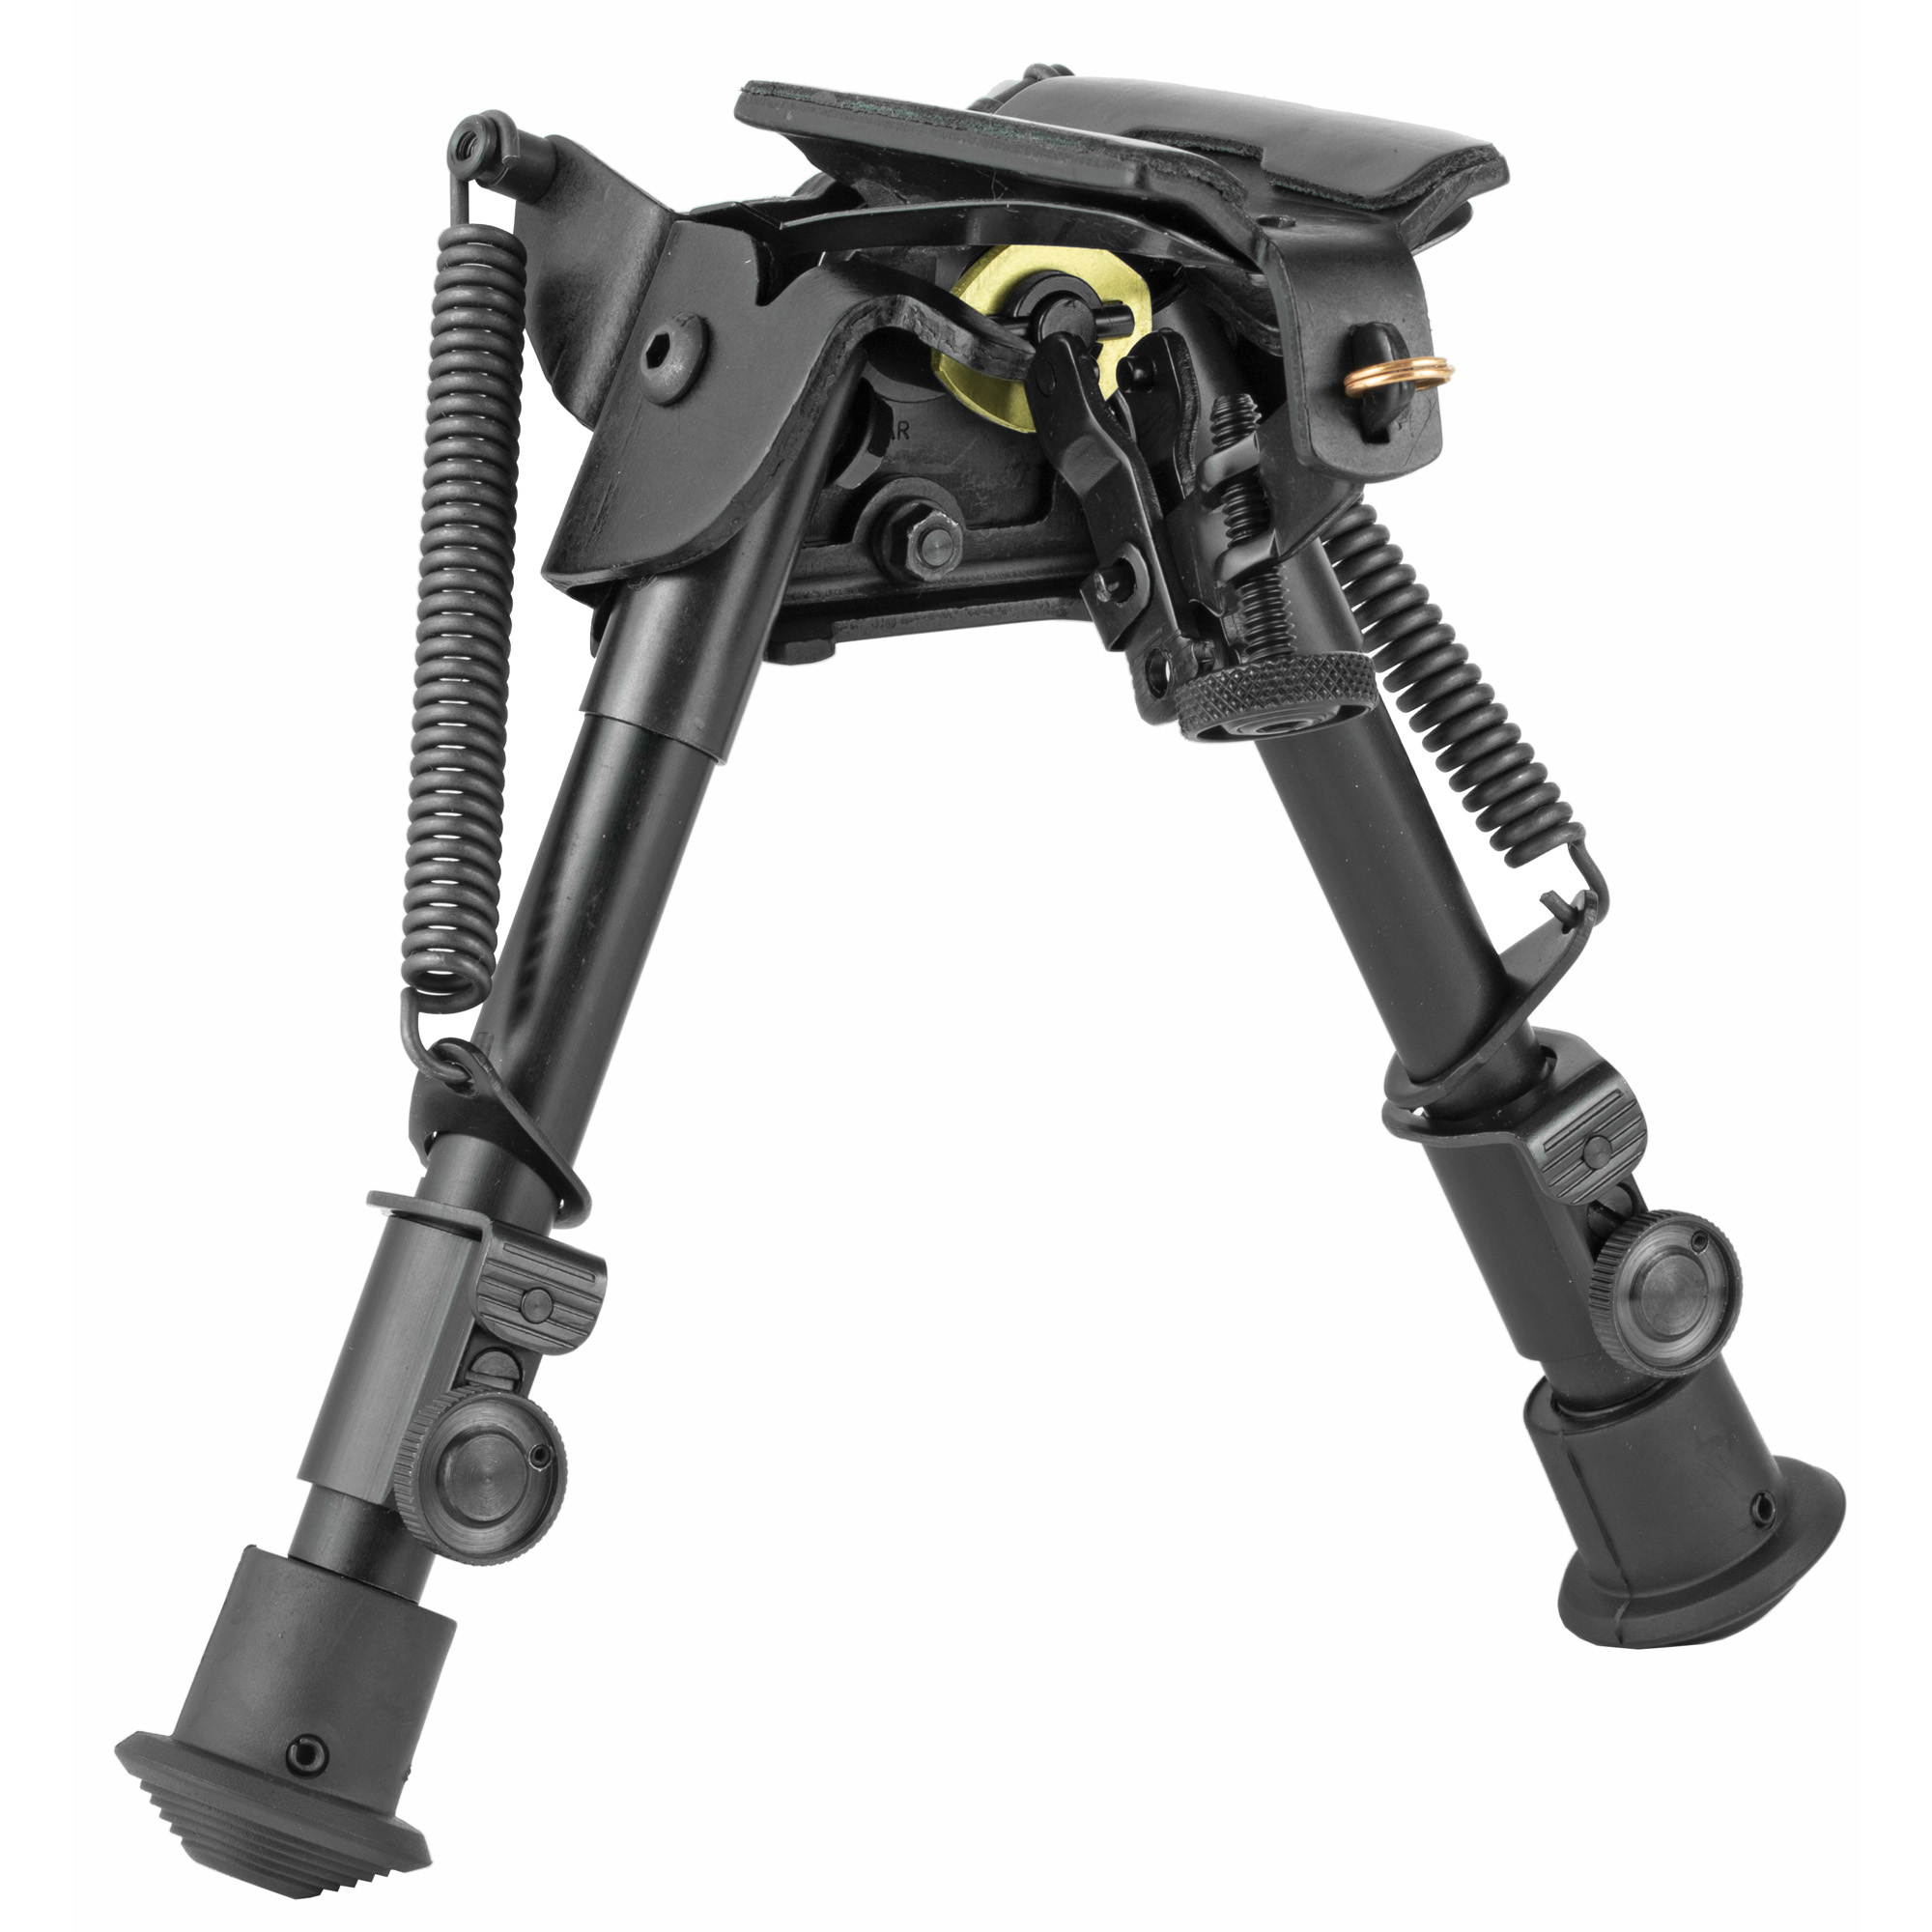 """Harris Engineering's Ultra-Light 6""""-9"""" Bench Rest Swivel/Sling Swivel Bipod is manufactured using high quality parts to ensure excellent function and sustainable use. It attaches to a Sling Swivel Stud. Carrying your rifle with a sling or shooting off-hand is not impeded by the use of a Harris Bipod. Hinged bases have tension adjustment to eliminate tremor or looseness in the crotch area of the bipod. Bipods have an all-weather black anodized finish."""